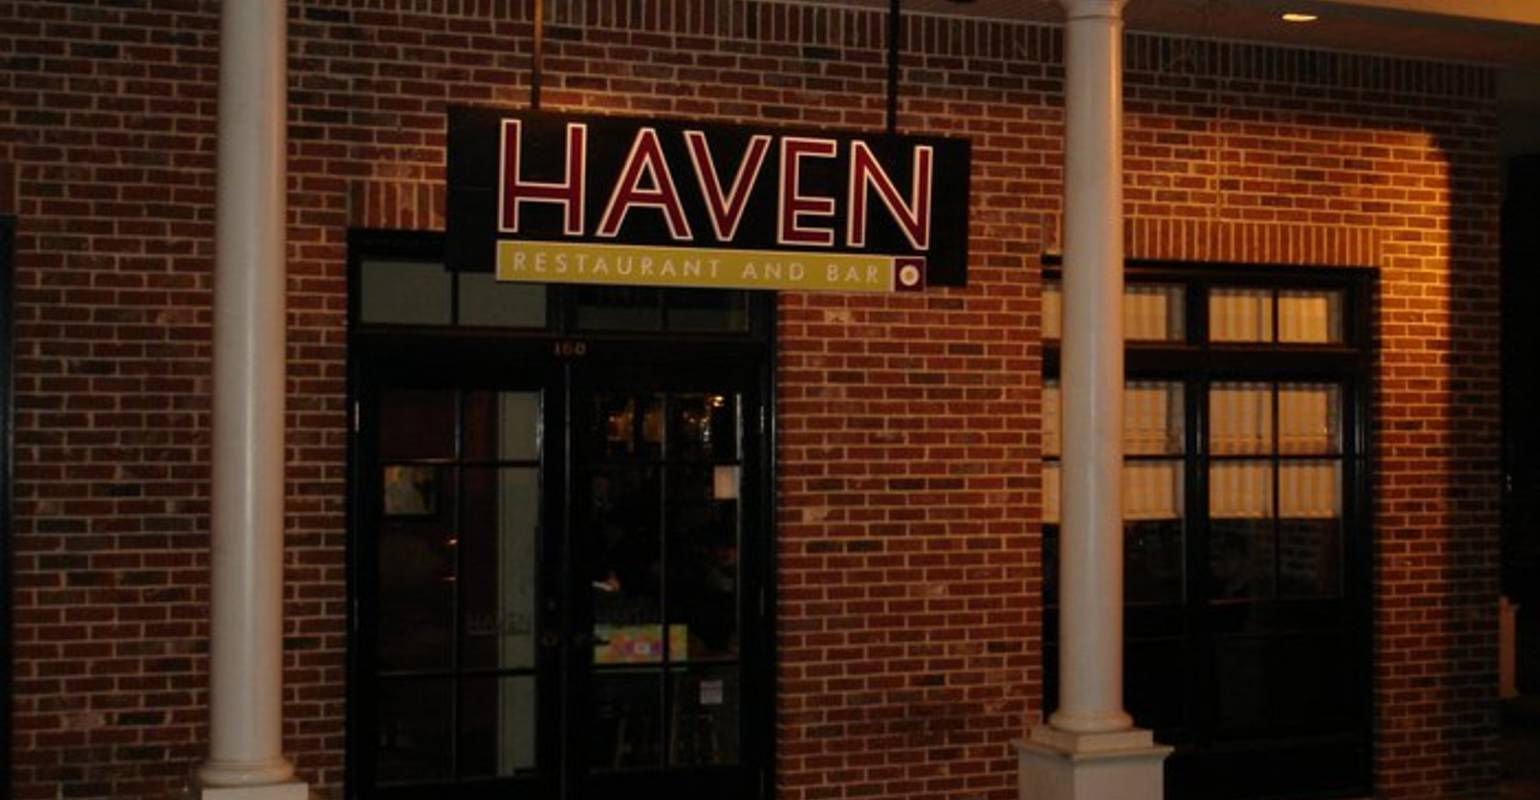 Haven Restaurant and Bar